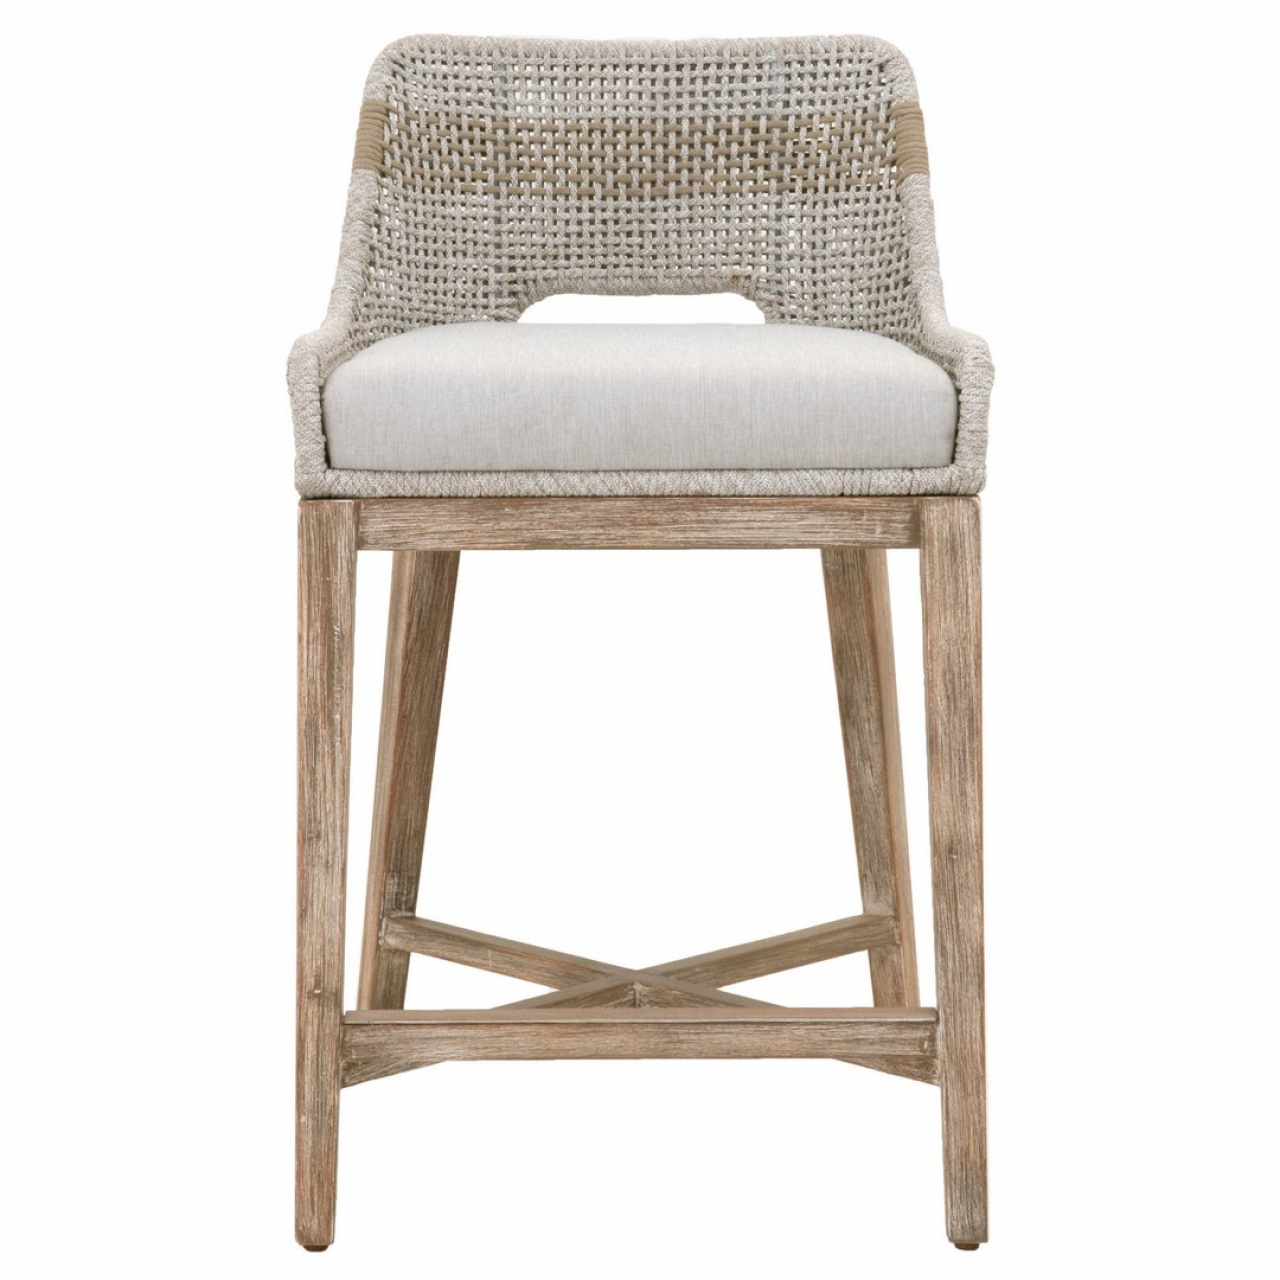 Tapestry+Counter+Stool+-+Taupe+-+1.jpg